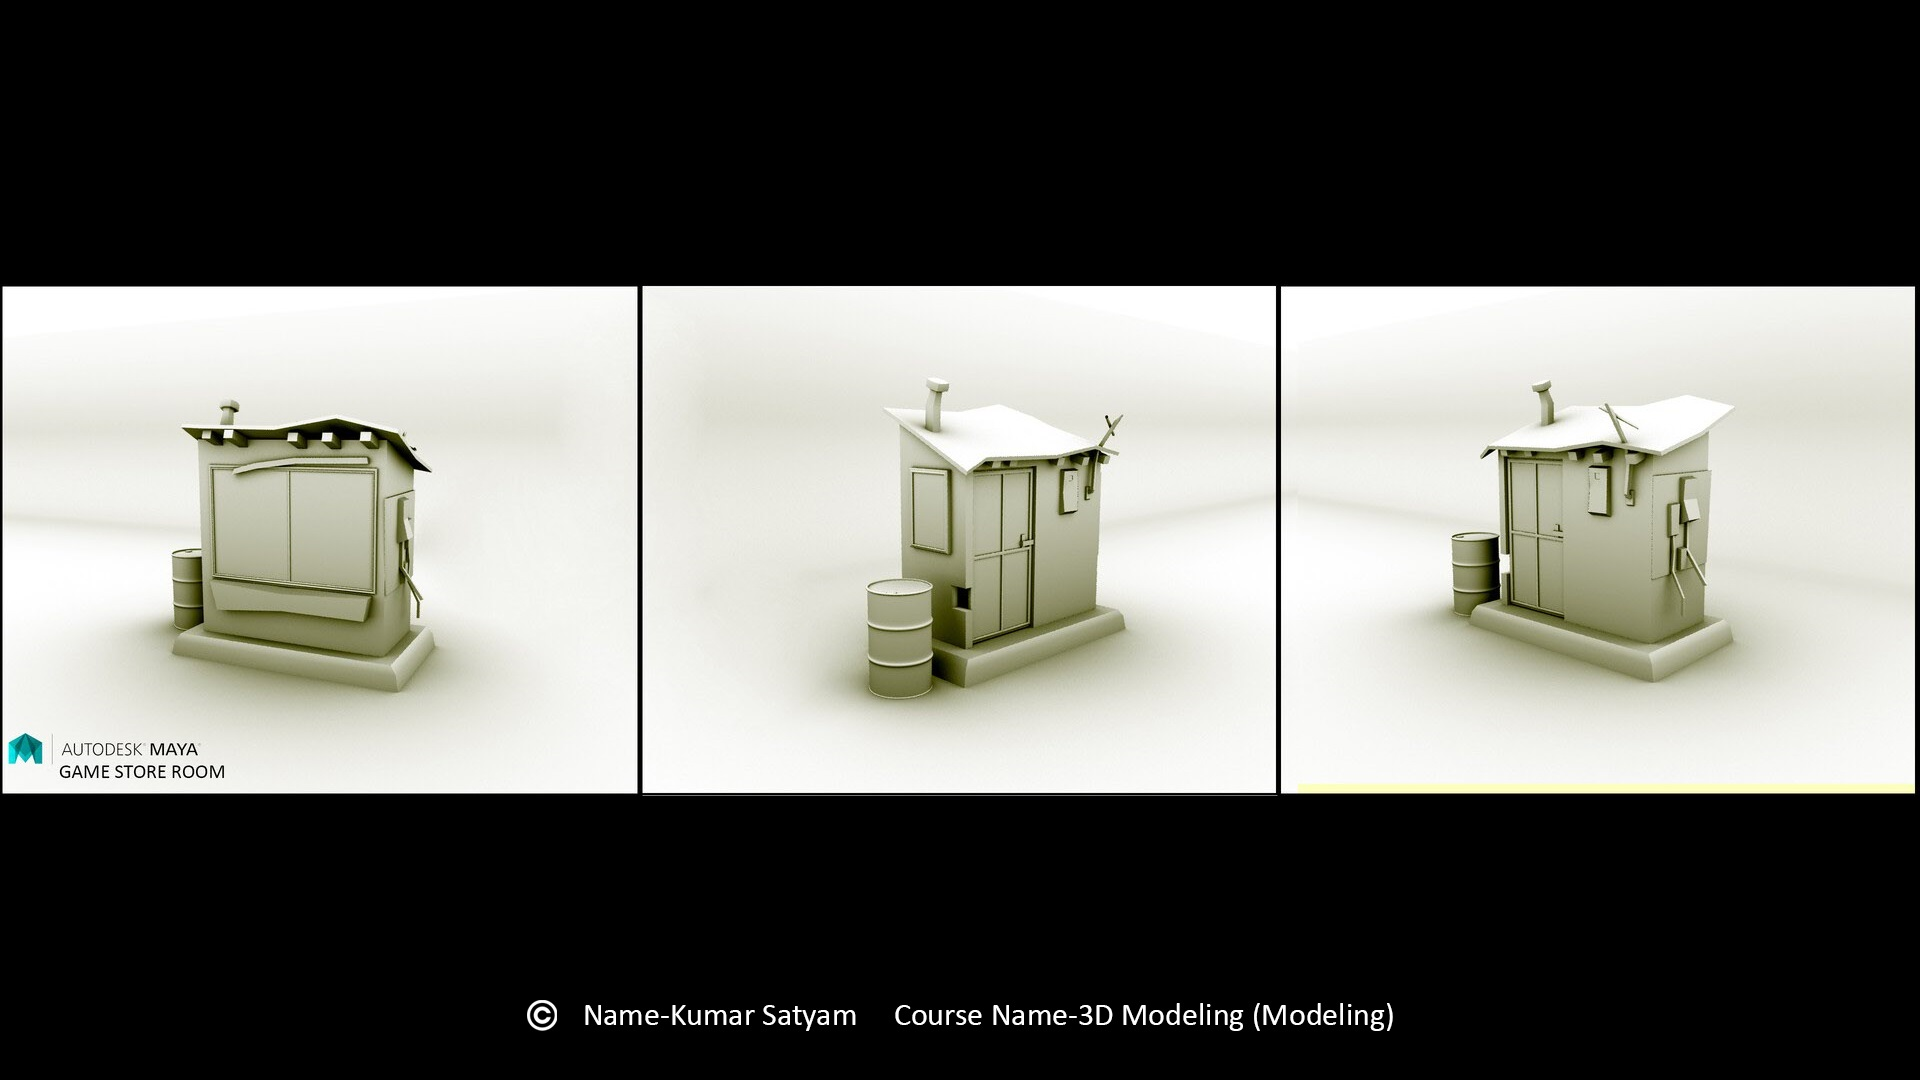 Reliance Education - Satyam Kumar - 3D Modelling